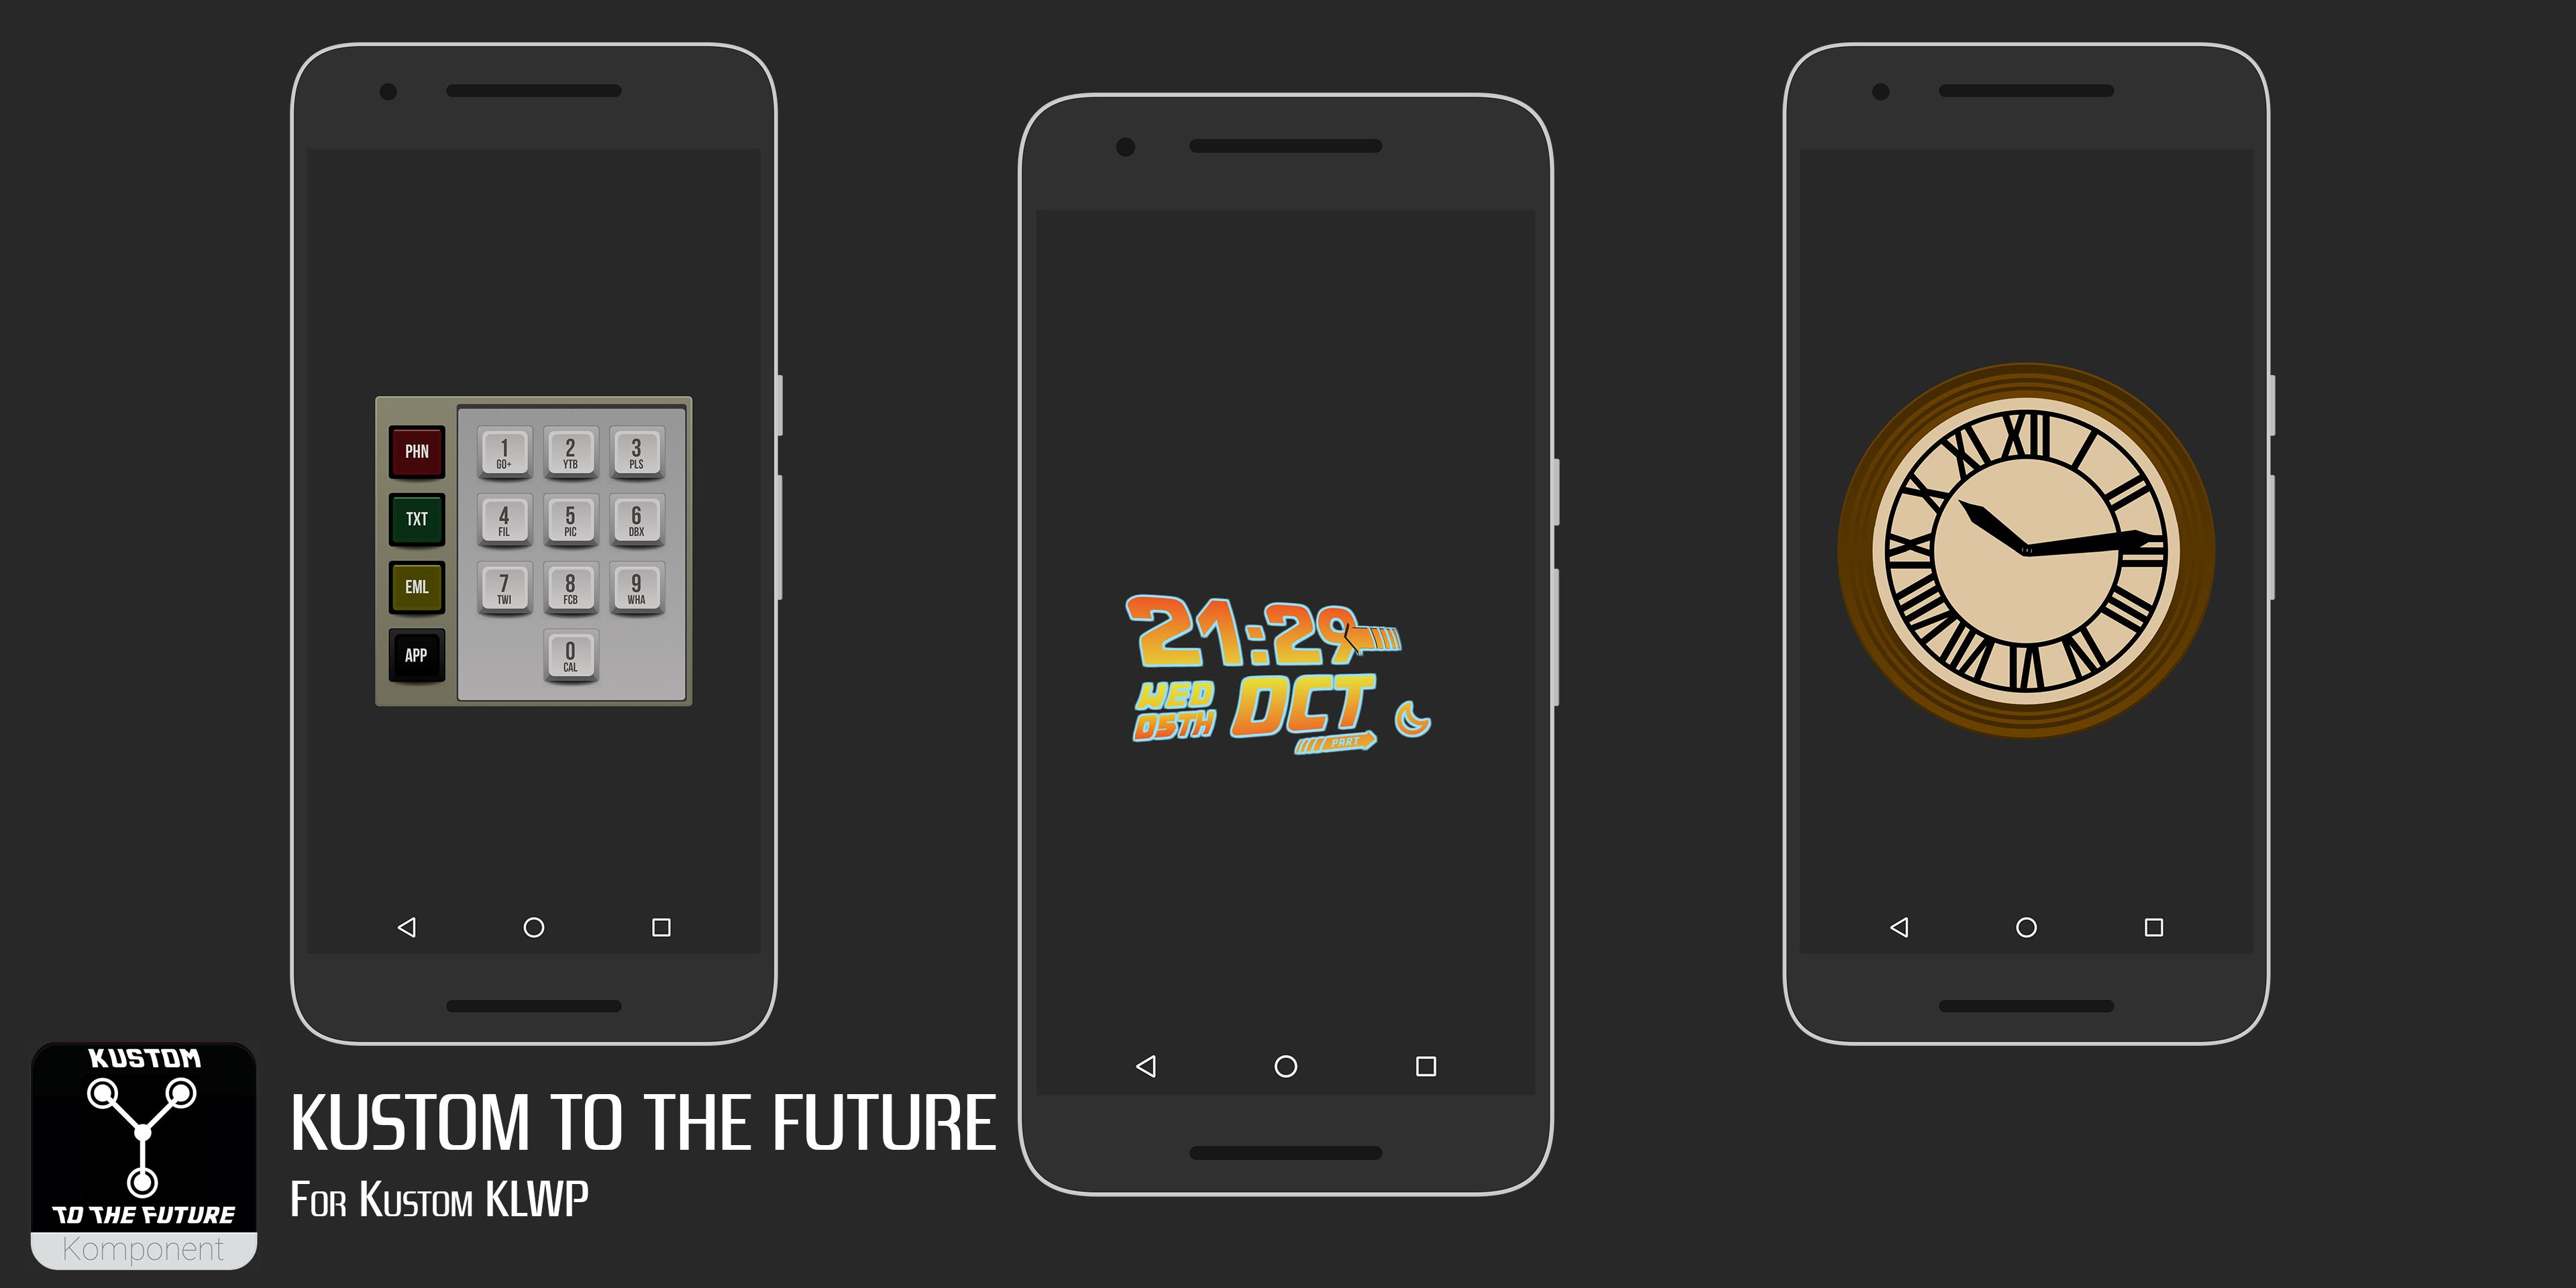 Kustom to the Future for KLWP